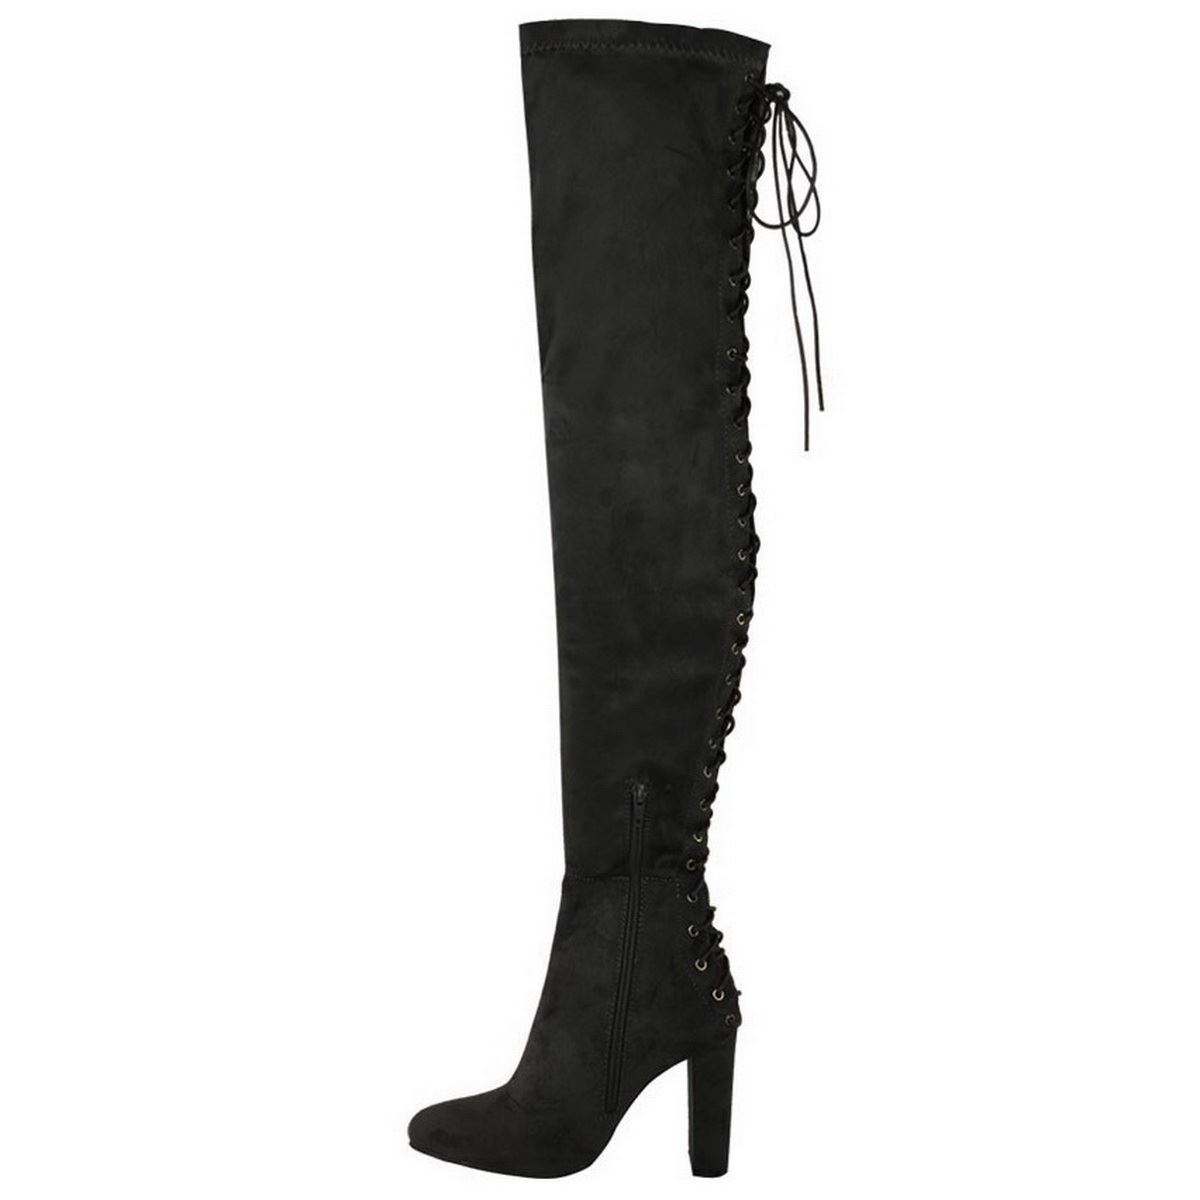 WOMENS LADIES OVER THE KNEE THIGH HIGH BLOCK HEEL LACE BACK STRETCH BOOTS SIZE